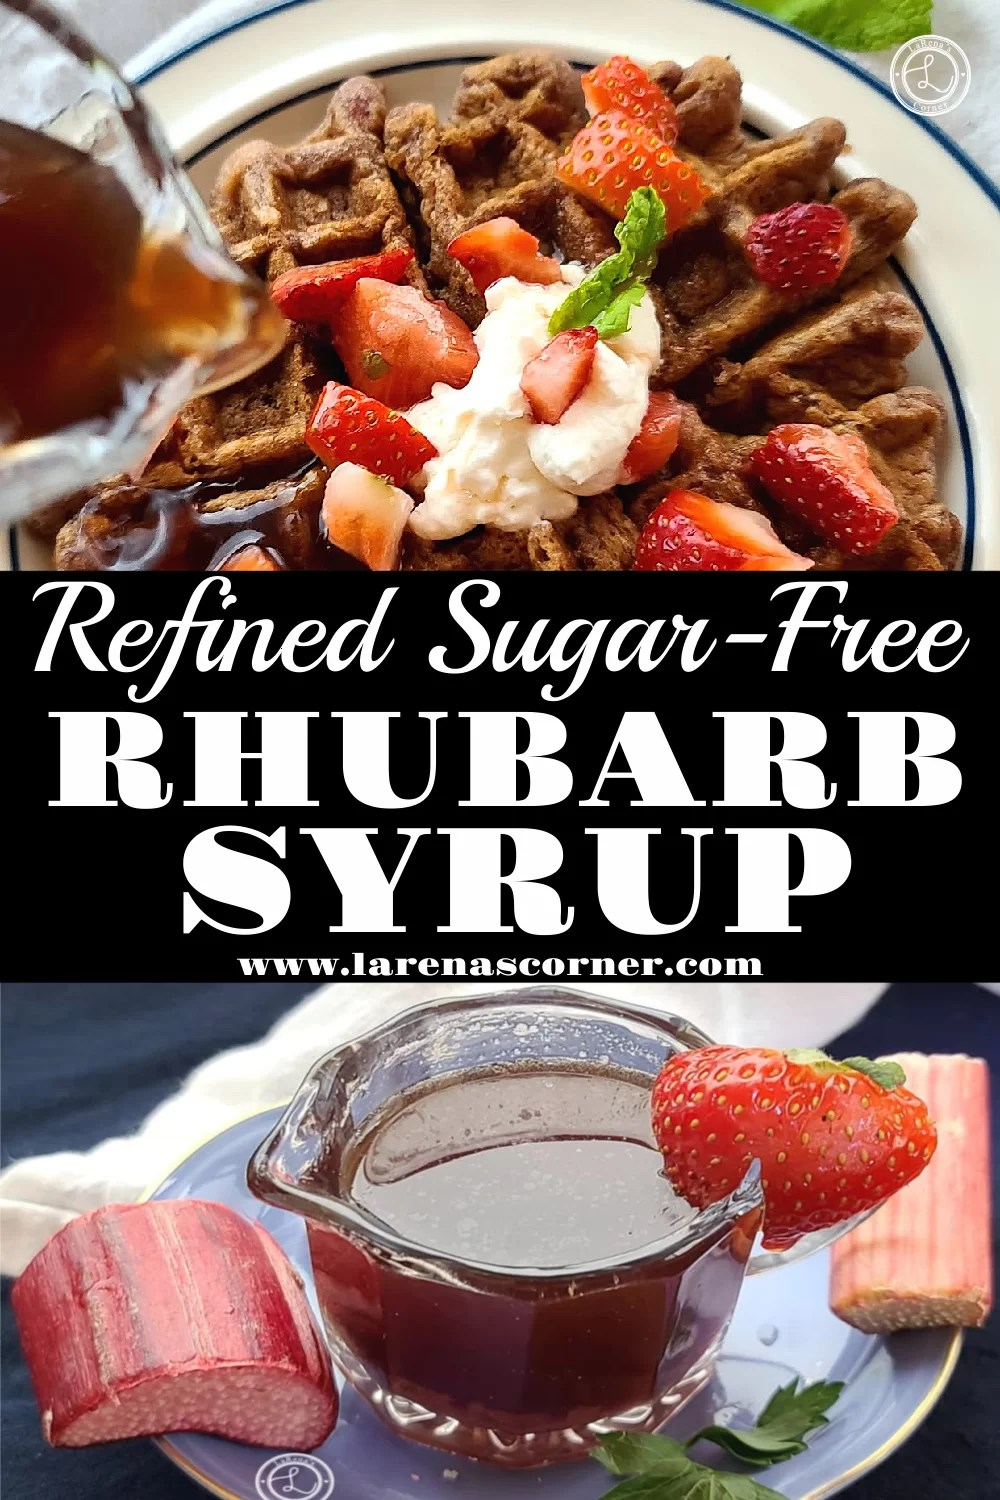 Two pictures of Refined Sugar-Free Rhubarb Syrup. One of the syrup being poured onto a waffle. The second picture of the syrup in a glass container.